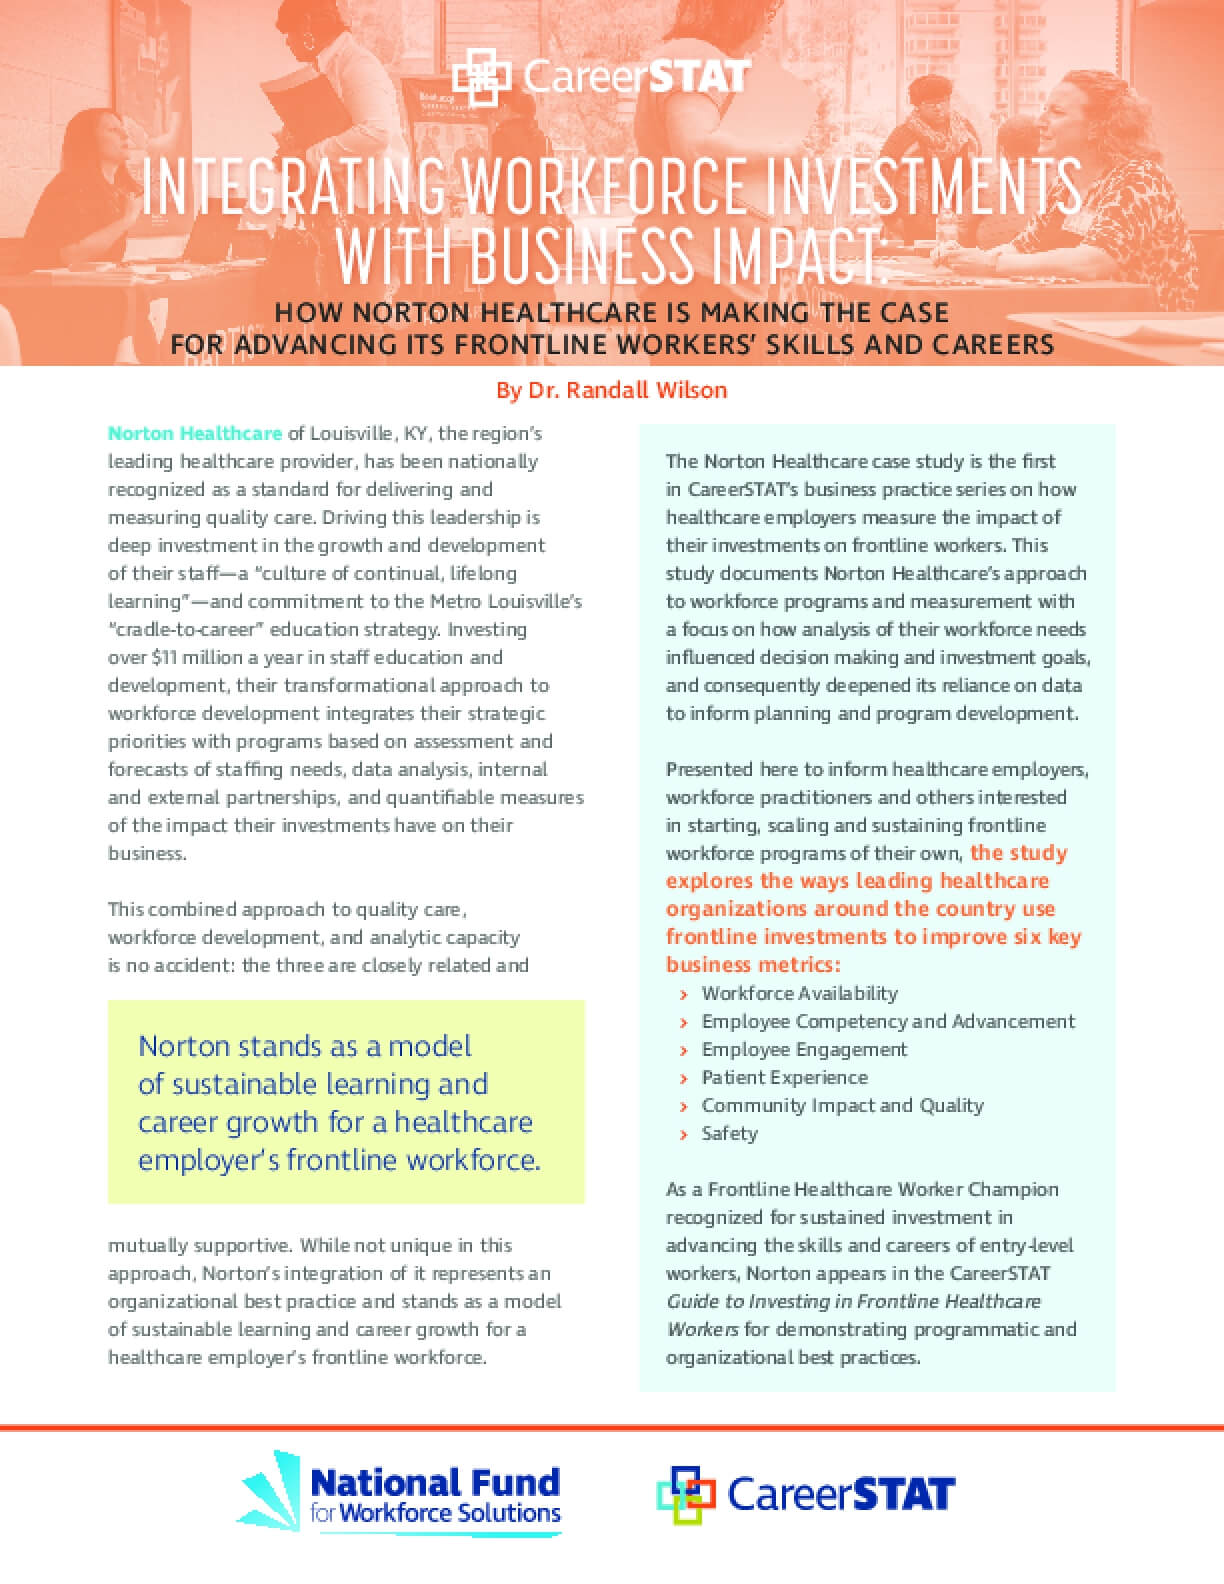 Norton Healthcare: Integrating Workforce Investments with Business Impact